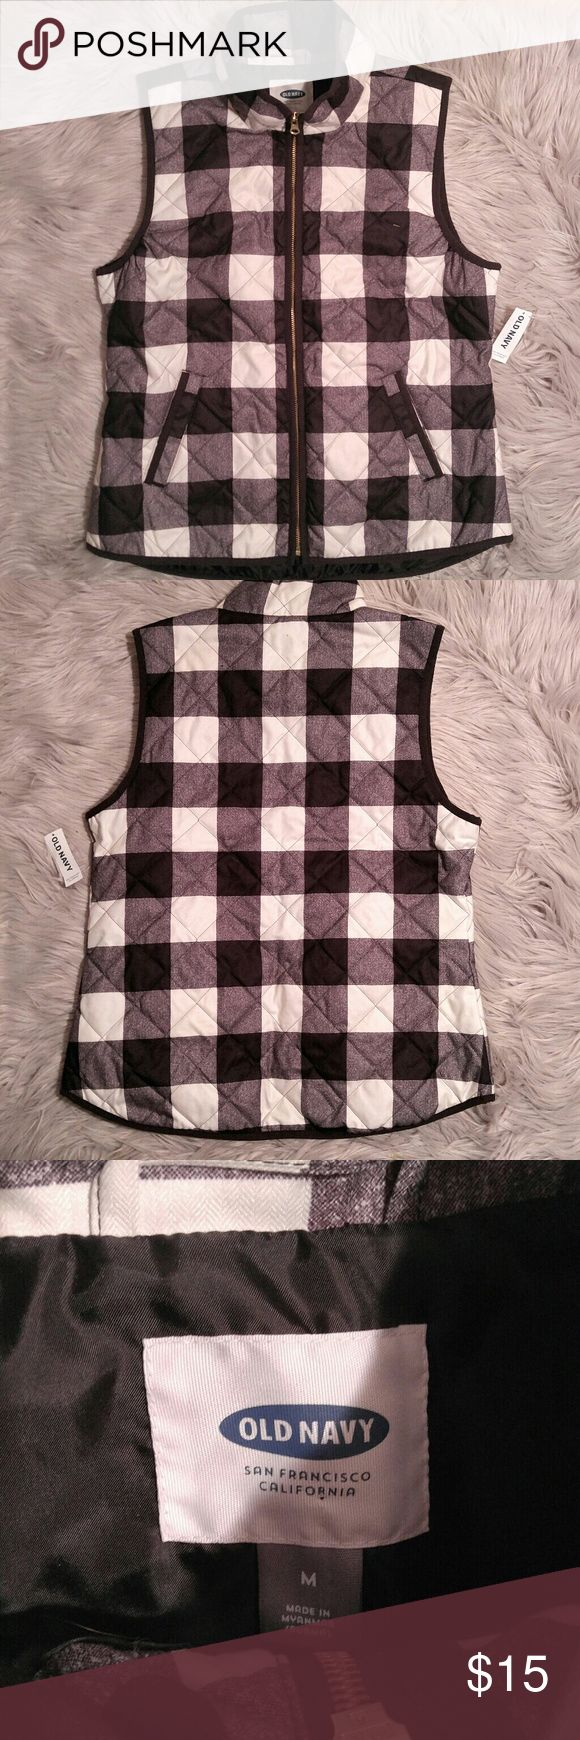 Old Navy plaid black and white vest bnwt Old Navy plaid black and white vest bnwt Size M Poly lined Fleece like outer Old Navy Jackets & Coats Vests